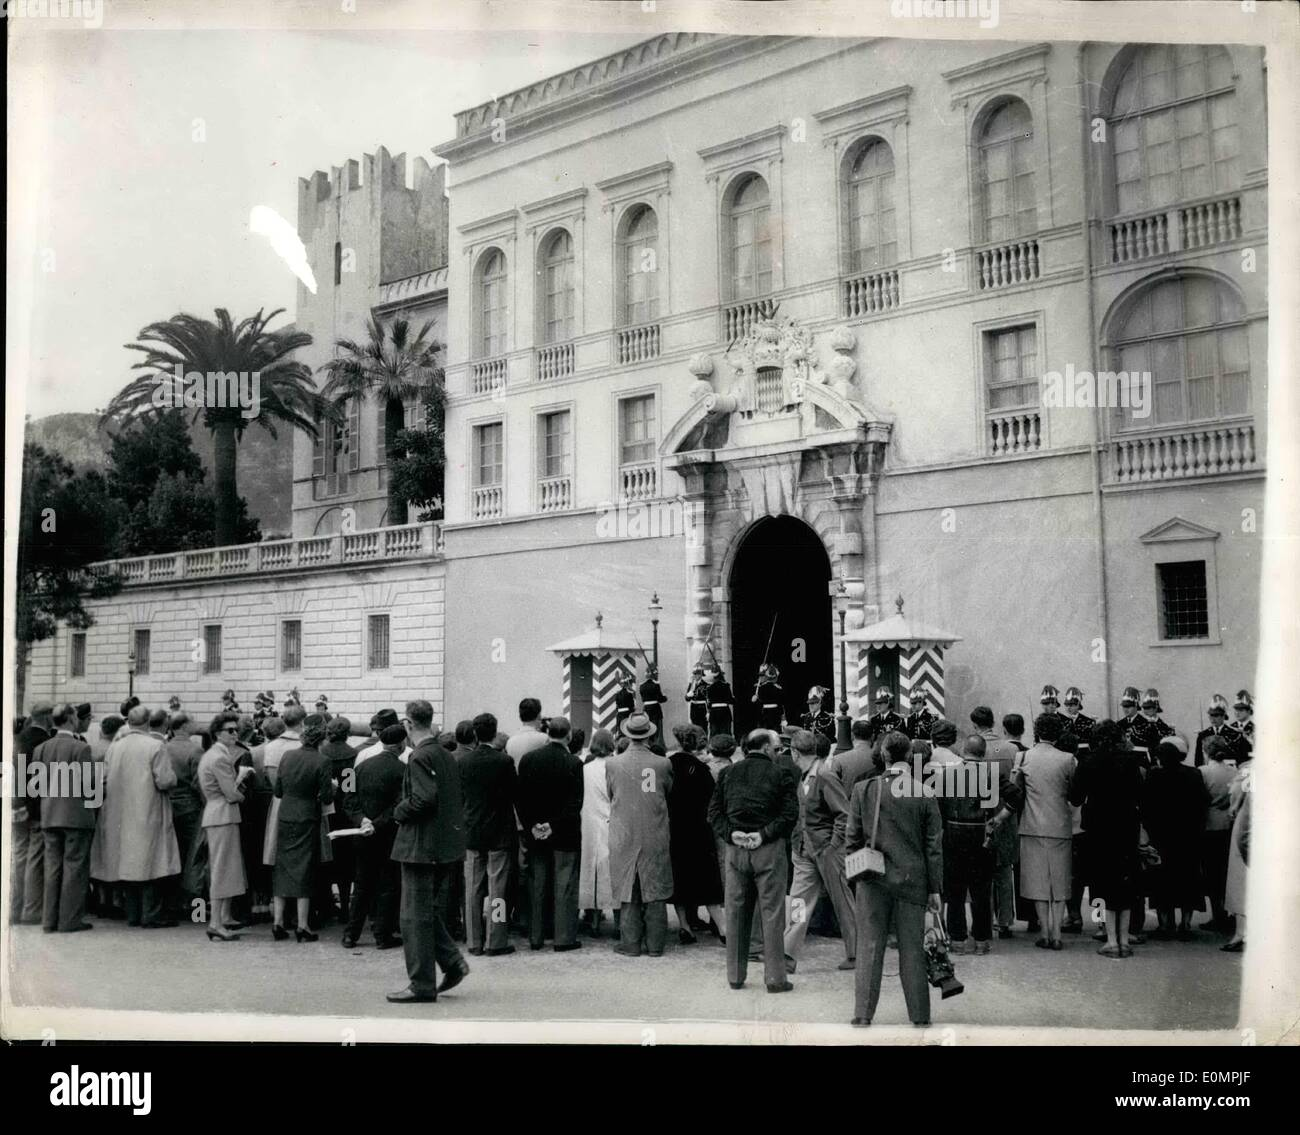 Apr. 13, 1956 - 13-4-56 All set for the Grace Kelly. Prince Ranier wedding. Crowds outside the Royal Palace, Monaco. Keystone Wire Photo Shows: The scene as onlookers watch the changing of the guard ceremony outside the Royal Palace in Monaco today. There were repeated calls of Let's see Princess Grace but she did not appear on the balcony as hoped. The final details are now almost complete for the wedding next week. - Stock Image